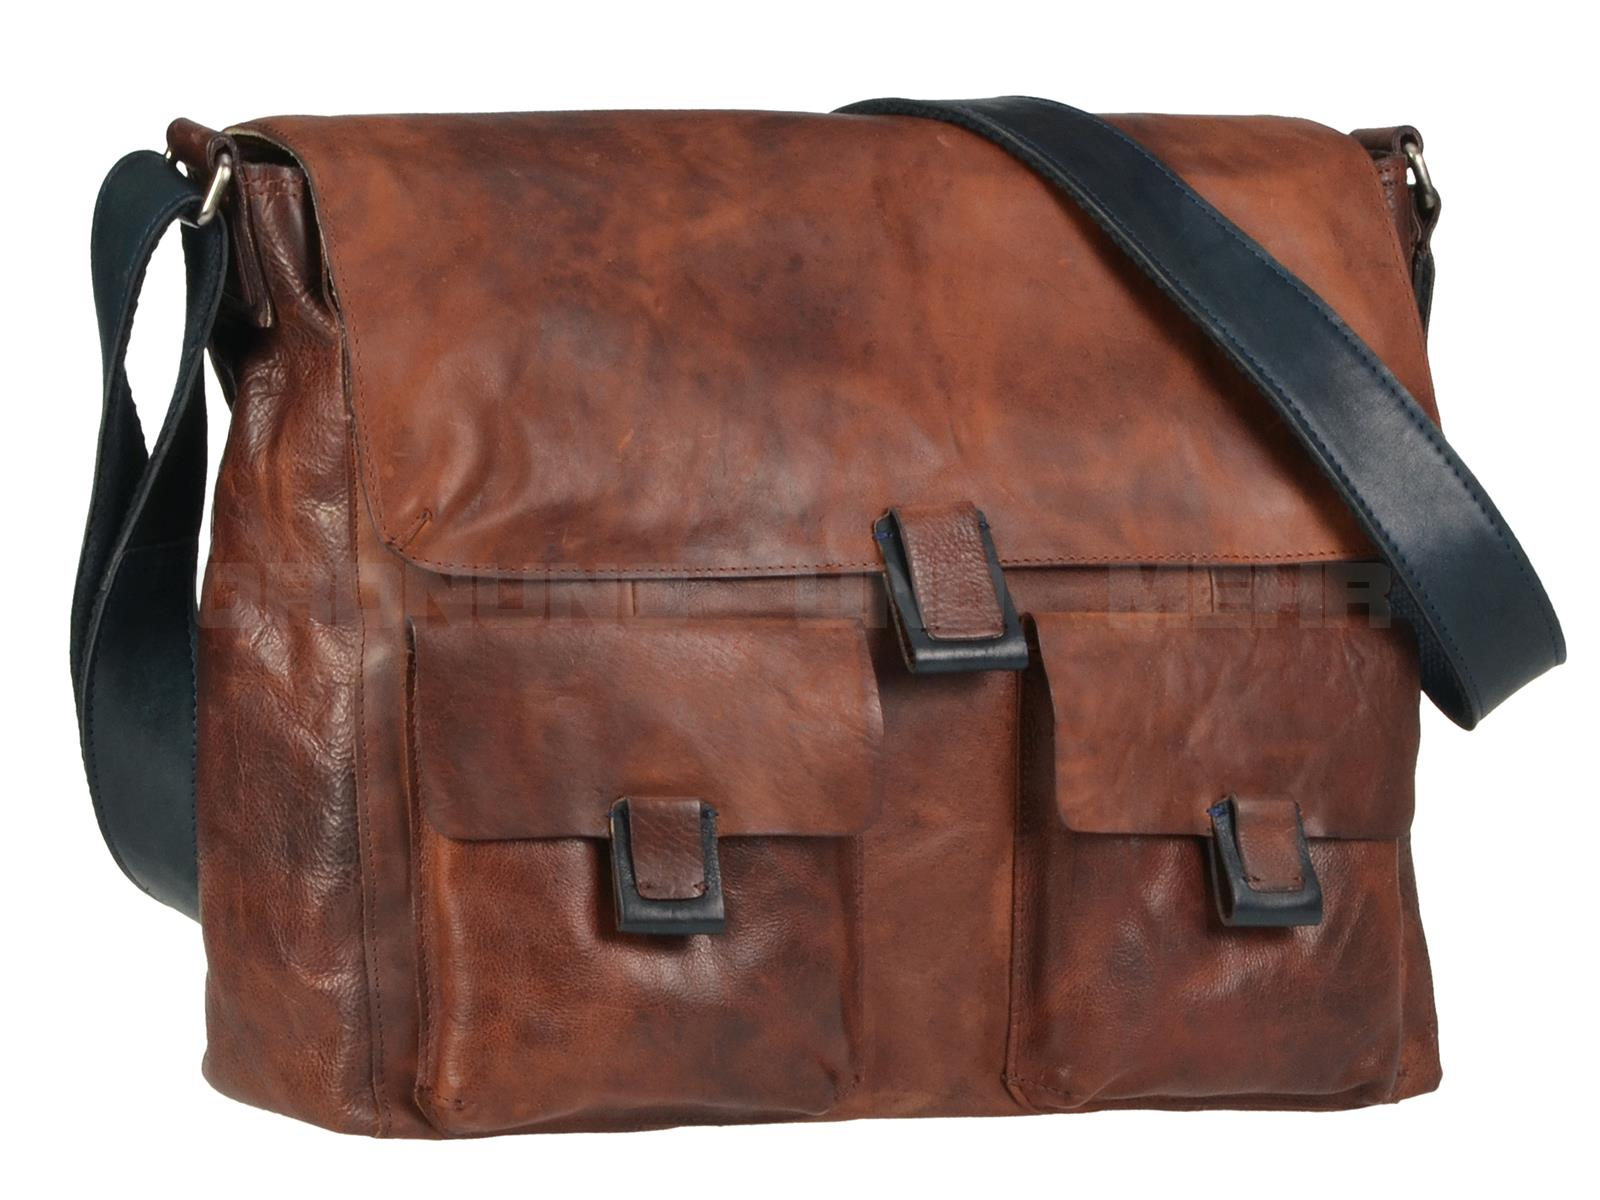 Harolds Ledertasche in kerniger Vintage Optik 248508